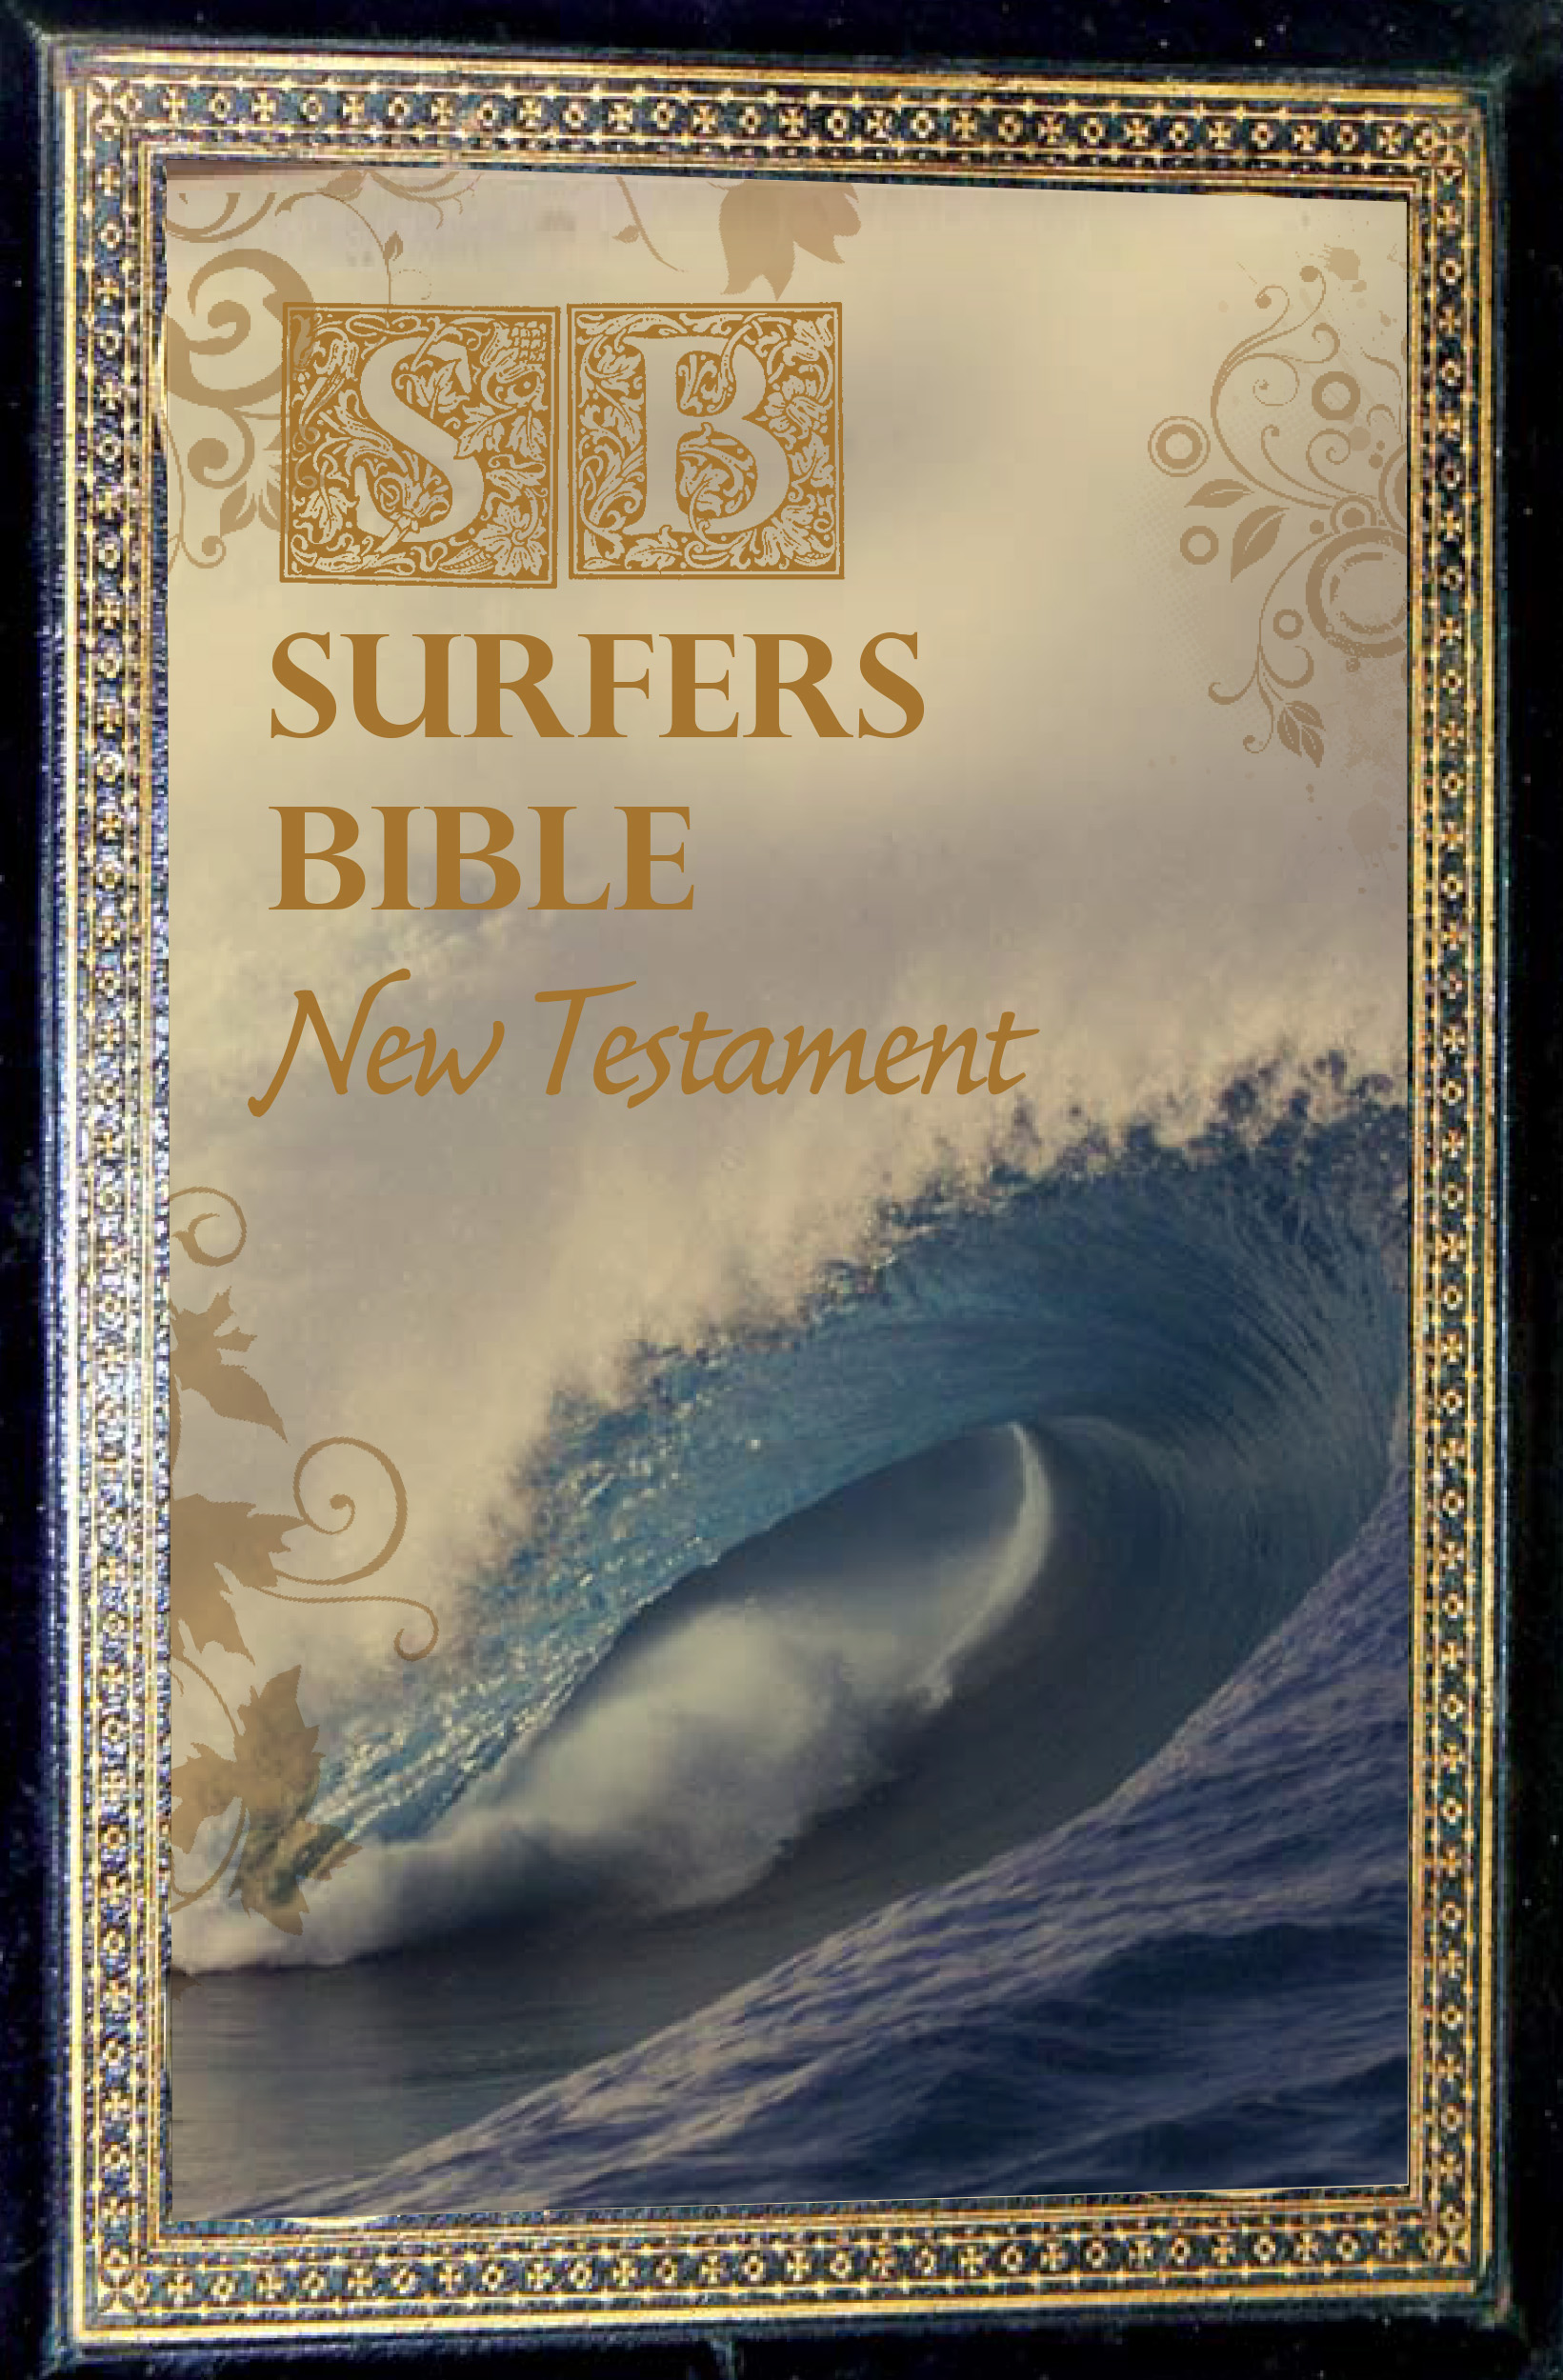 Surfers-Bible-NT-Cover.jpg